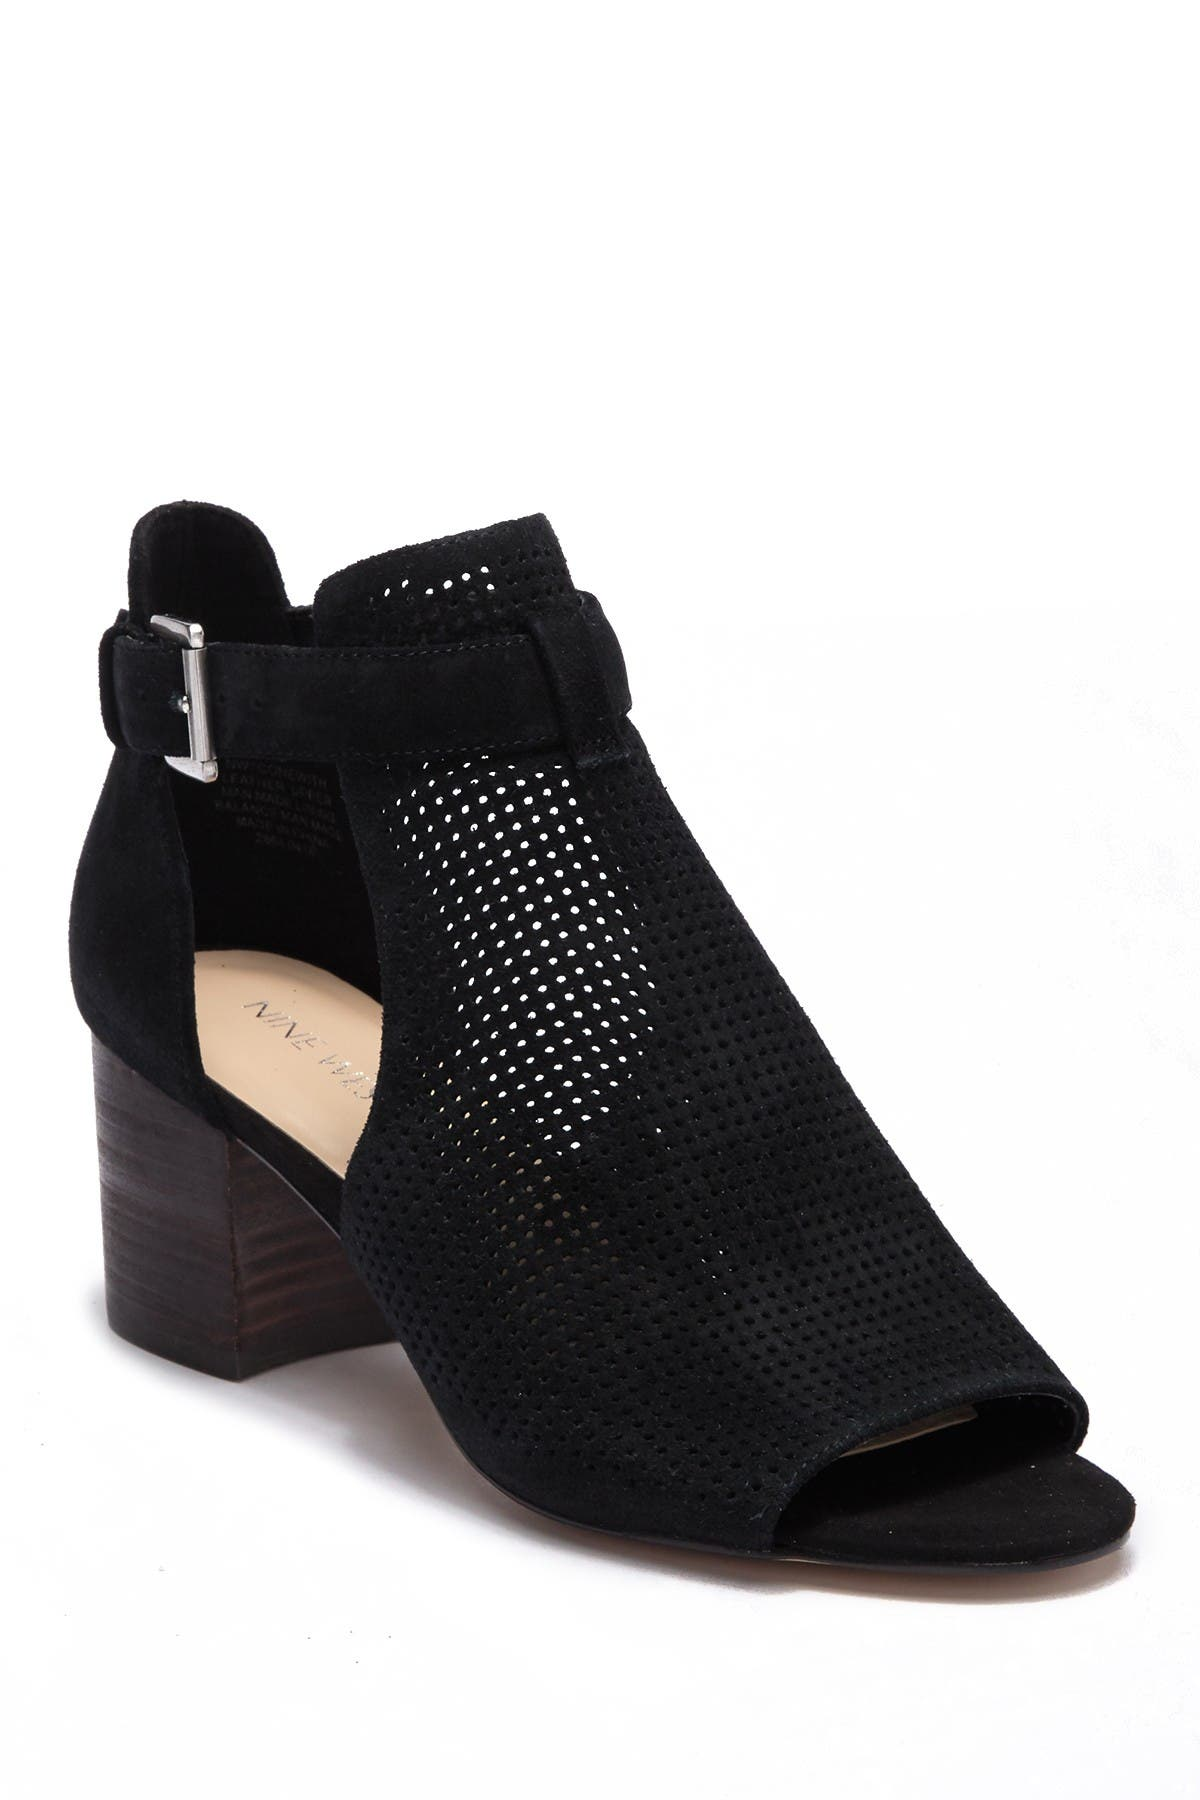 Image of Nine West Gone With Perforated Suede Bootie